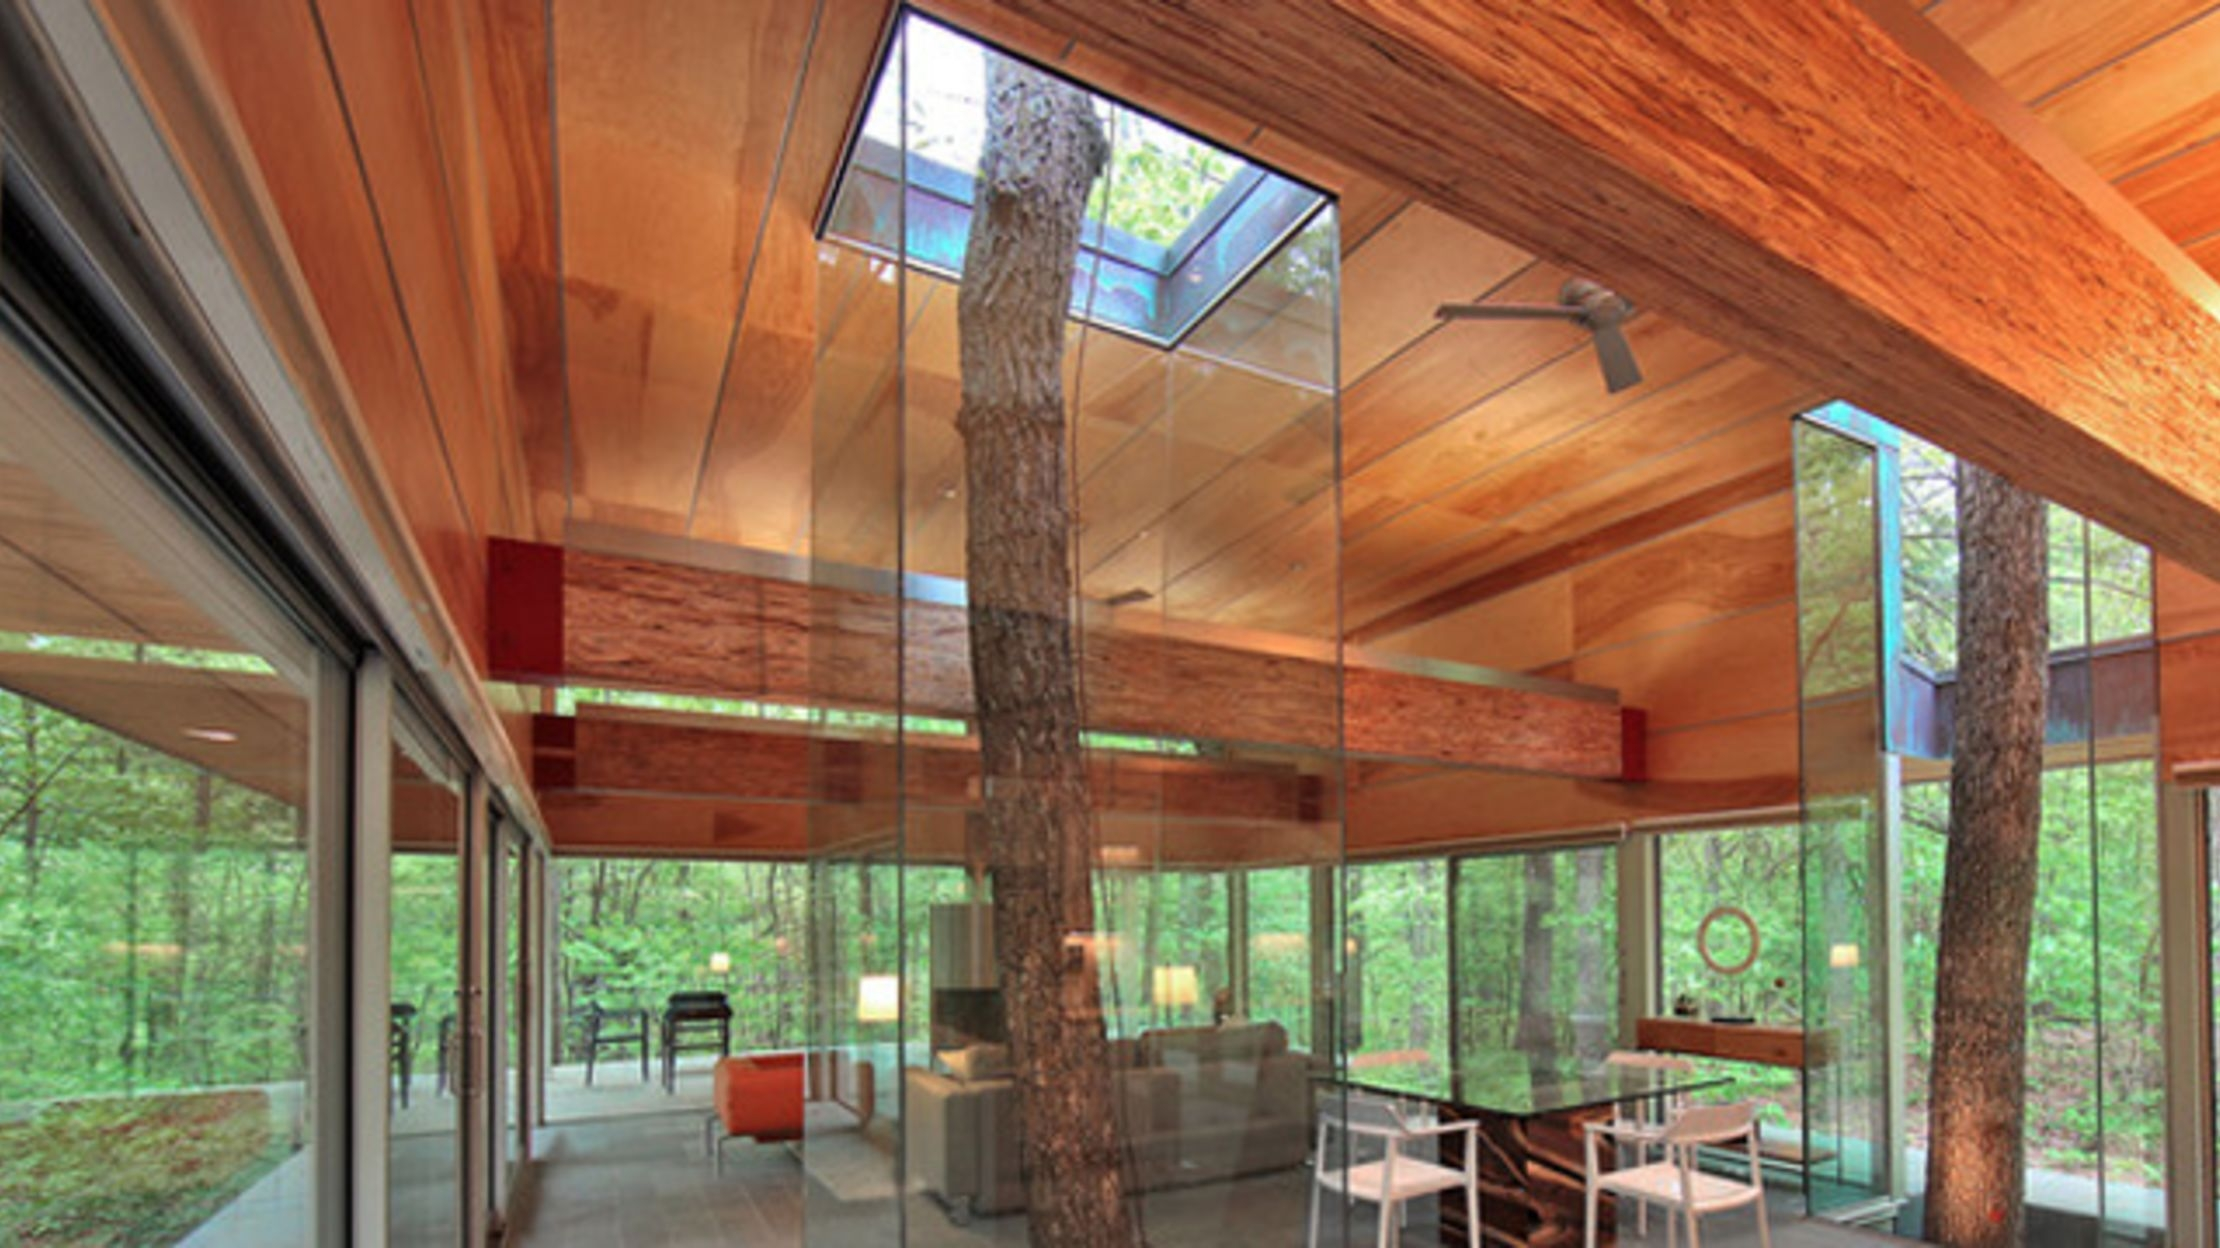 10 Houses Built Around Trees Mental Floss   Spiral Staircase Around Tree Trunk   Treehouse Masters   Ter Kulve   Canopystair   Robert Mcintyre   Wooden Stairs